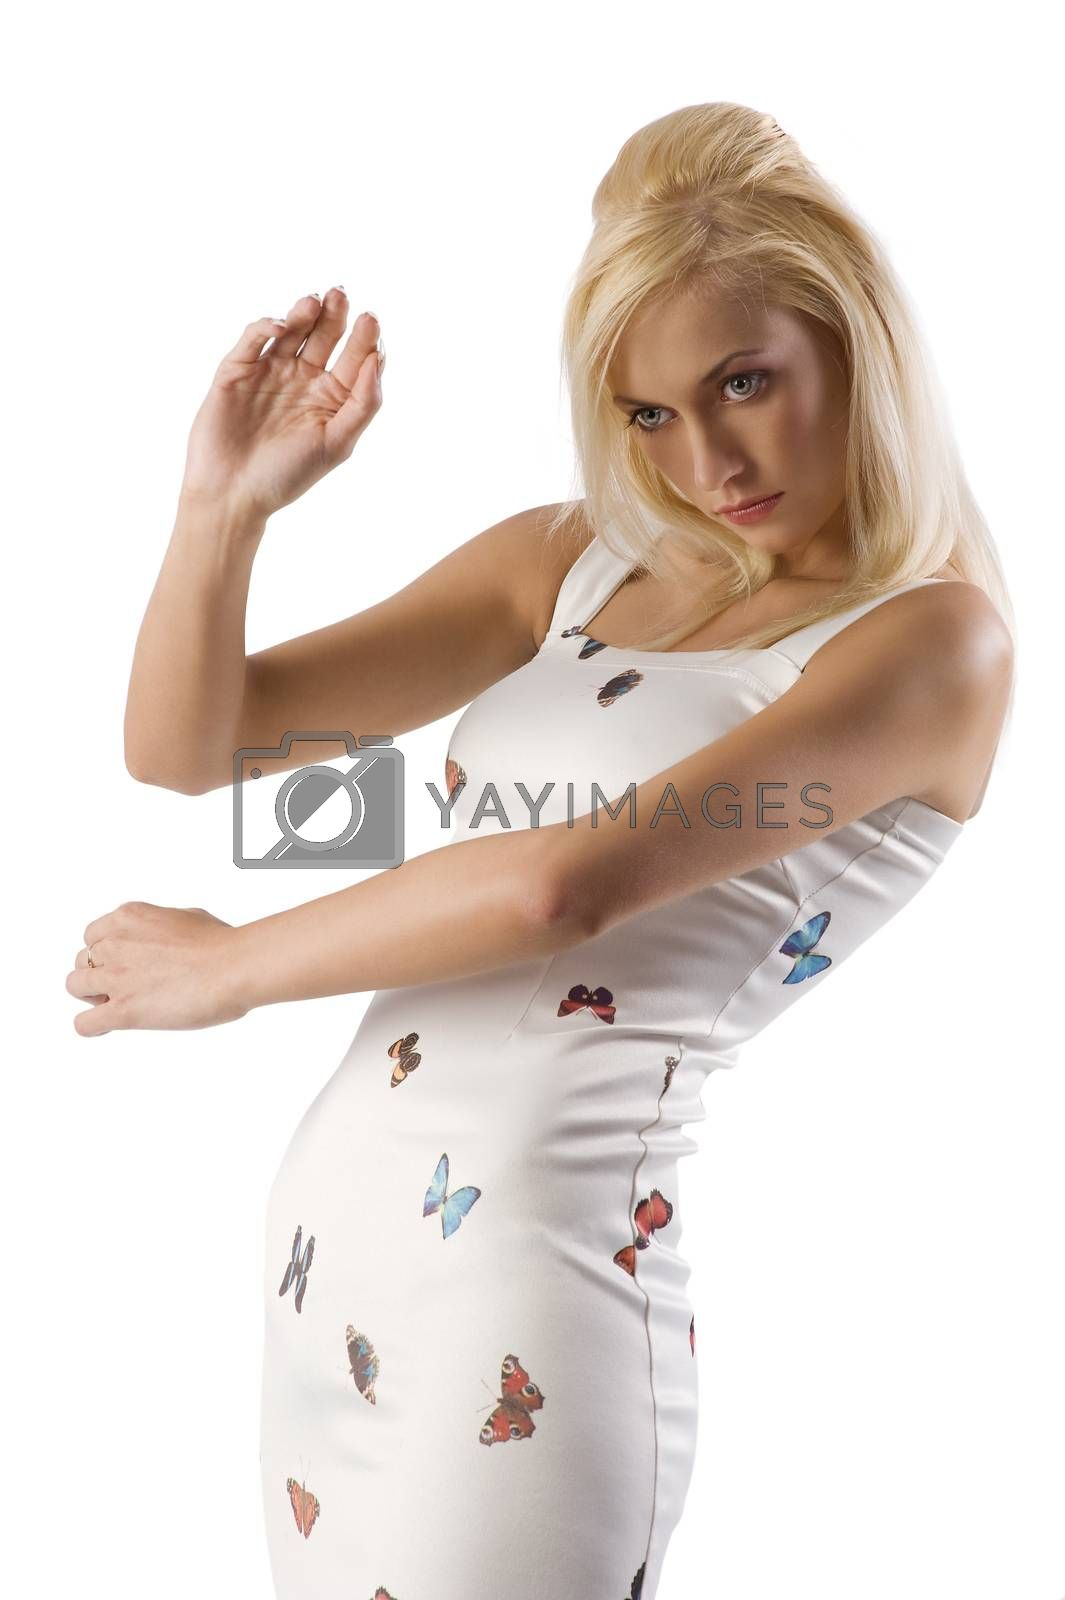 Royalty free image of blond girl in plastic pose by fotoCD